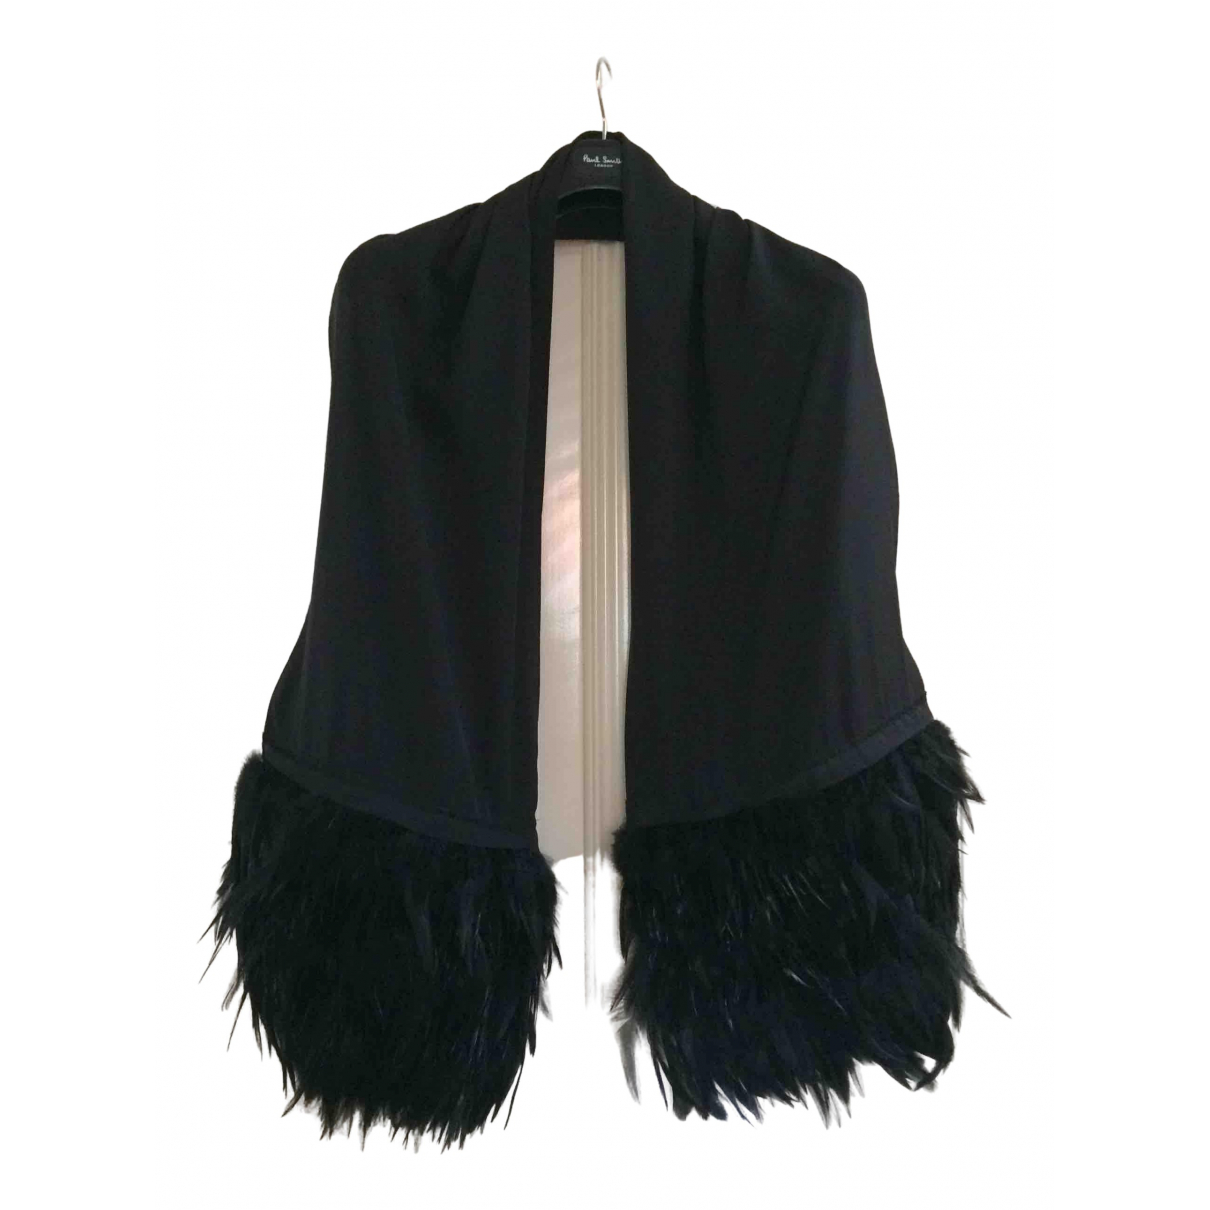 Hôtel Particulier \N Black Silk scarf for Women \N